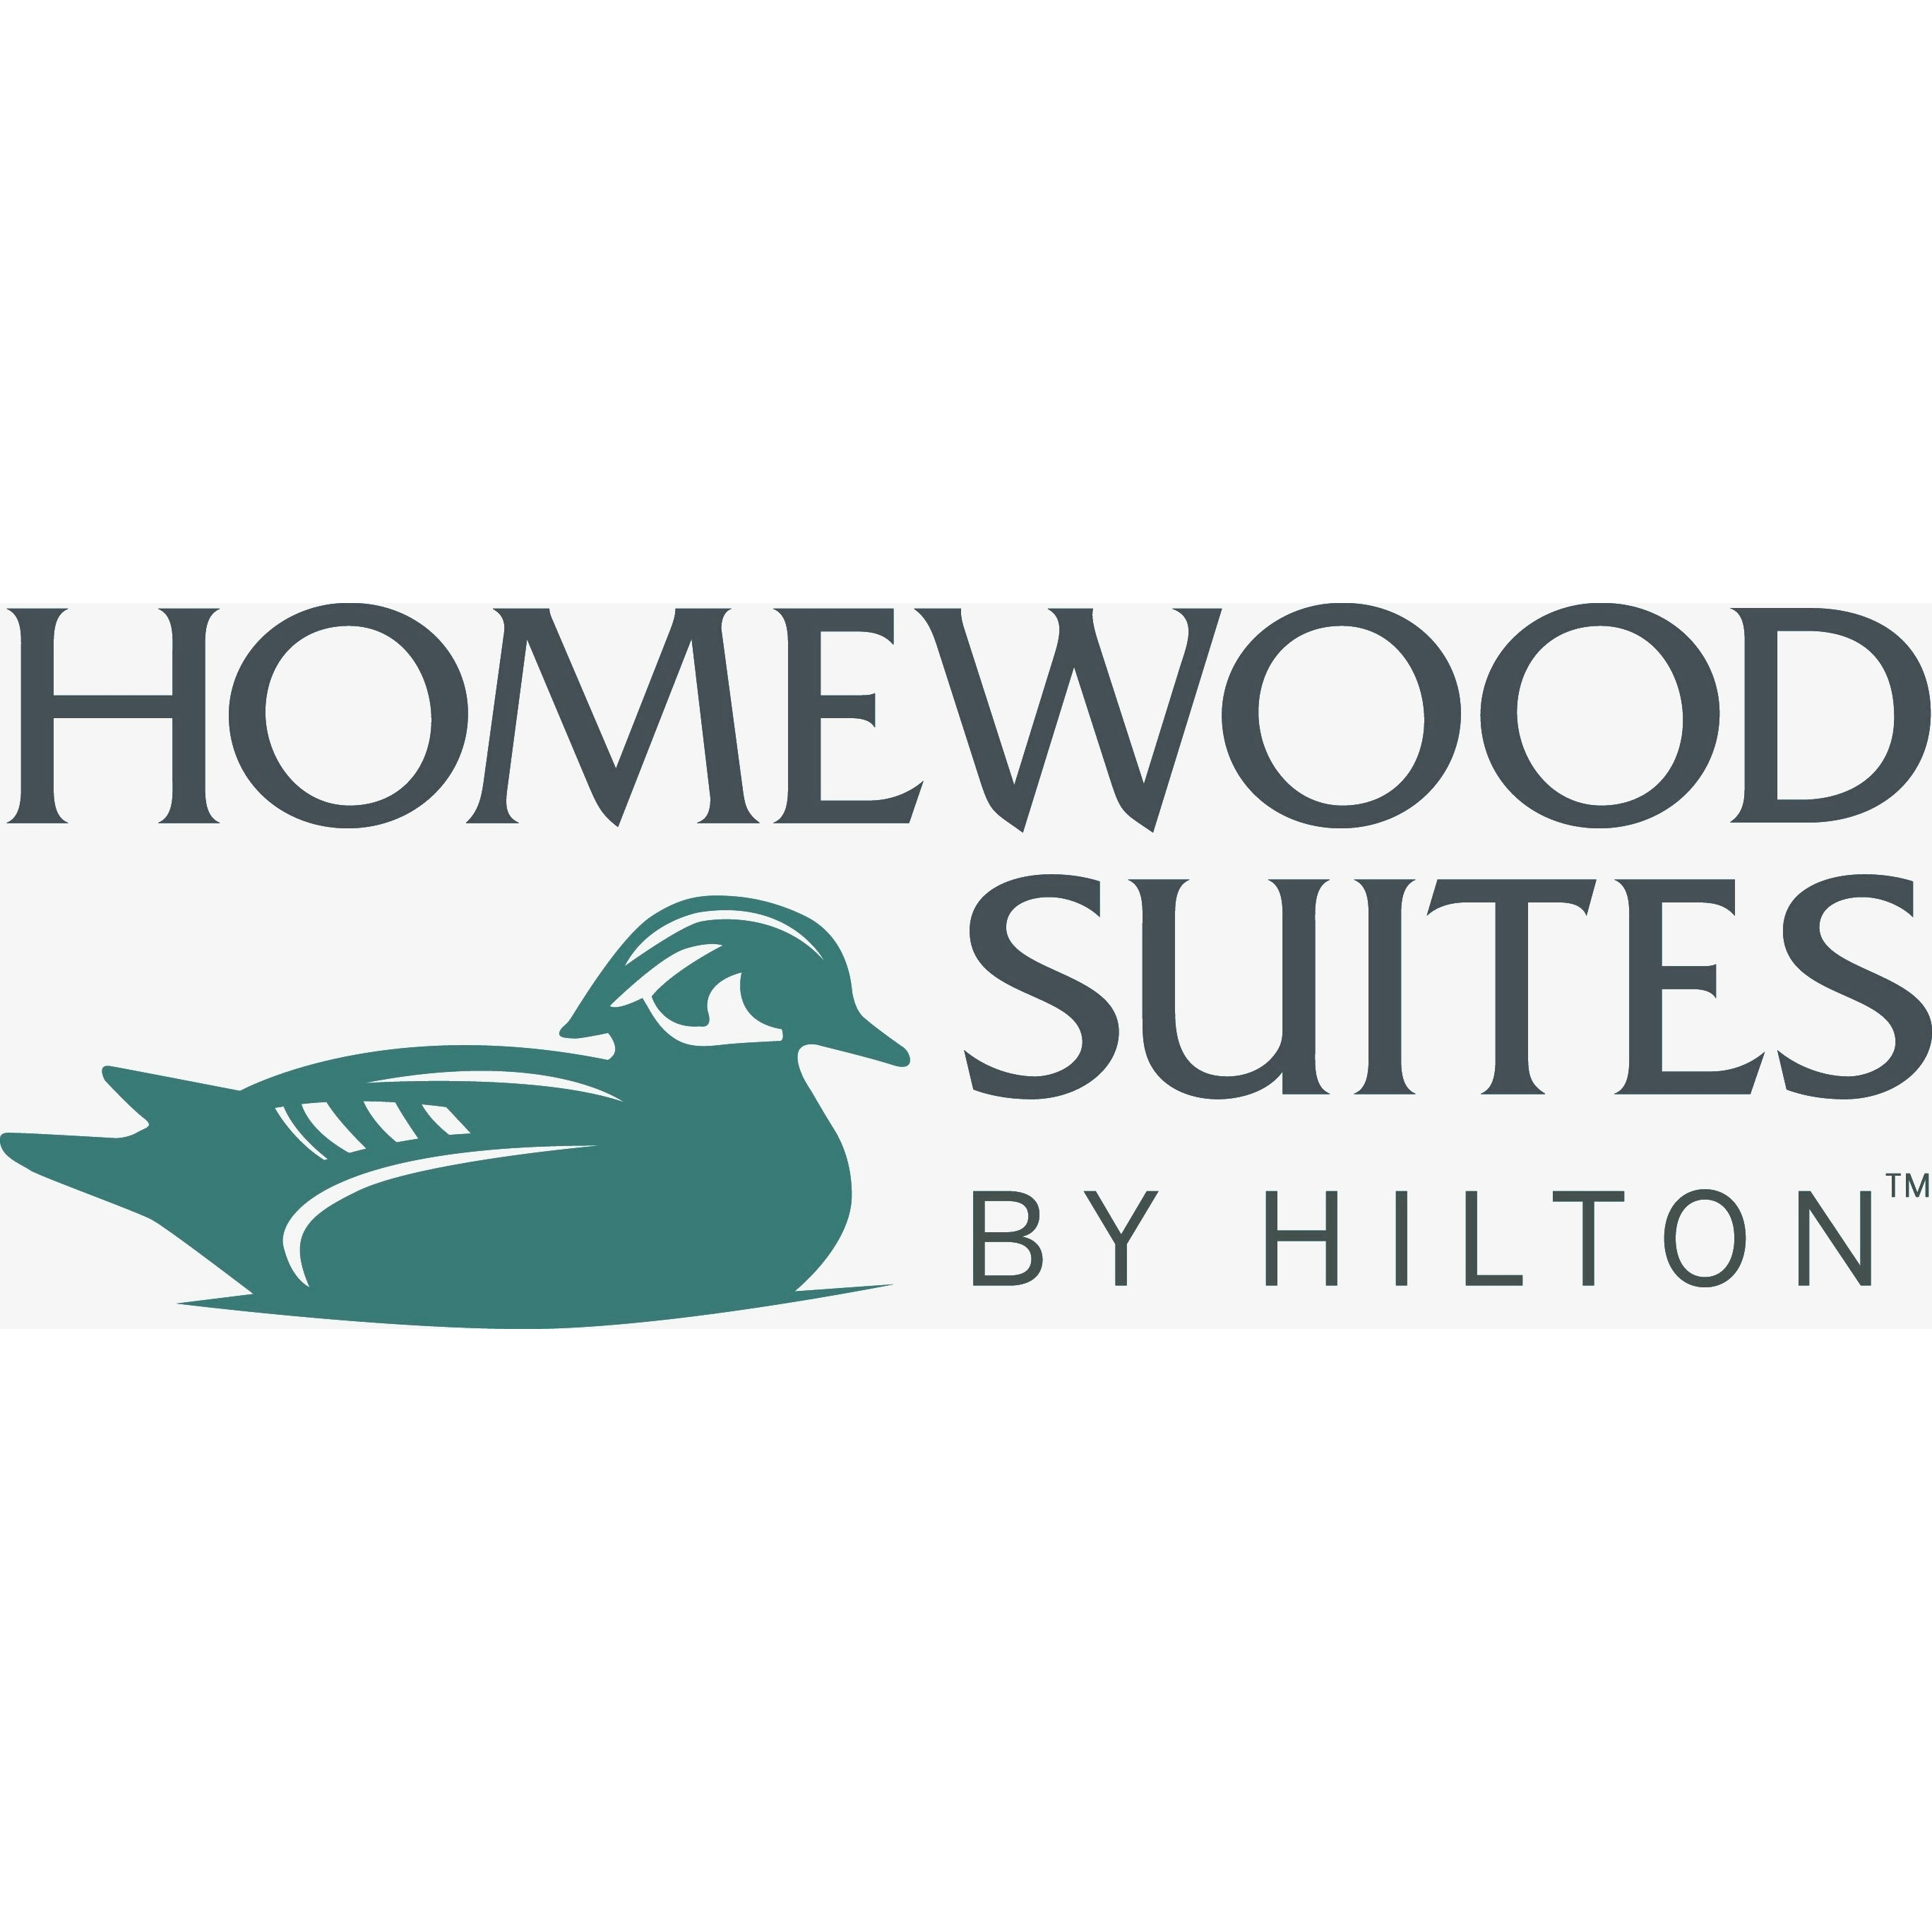 Homewood Suites by Hilton Dallas-Market Center